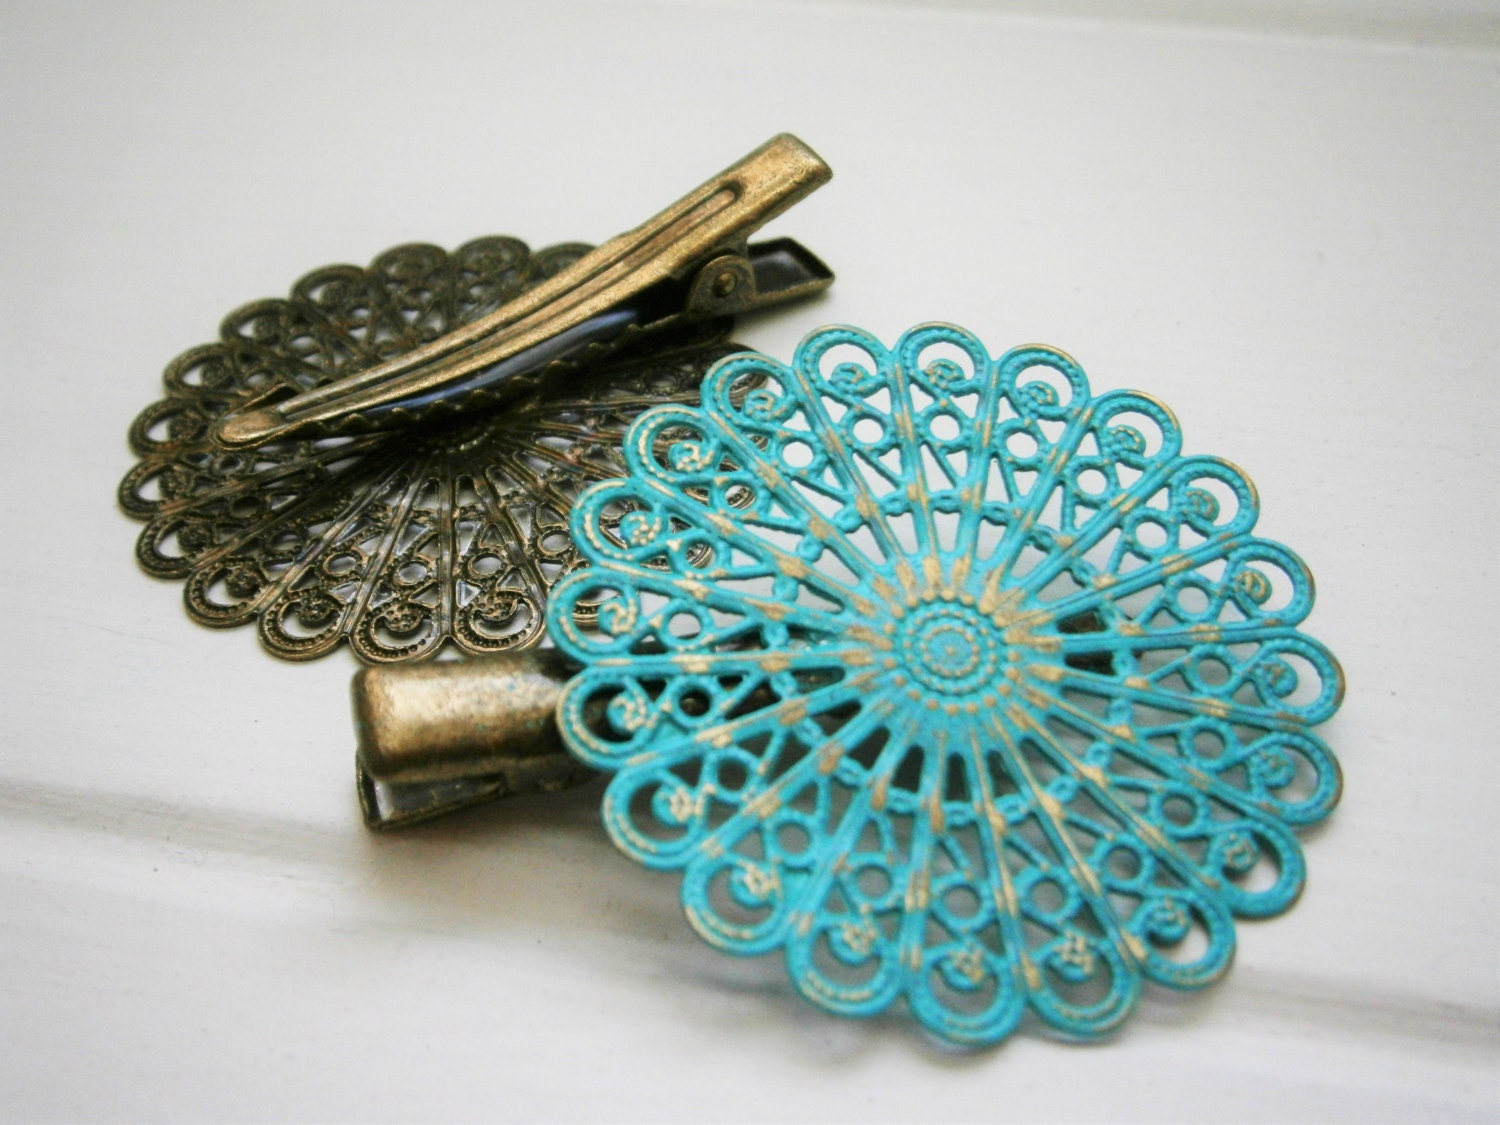 Filigree Bobby Pin Verdigris Patina Lace Hair Accessories Green Blue Antique Brass Rustic Country Chic Old World Vintage Style Hair Clip